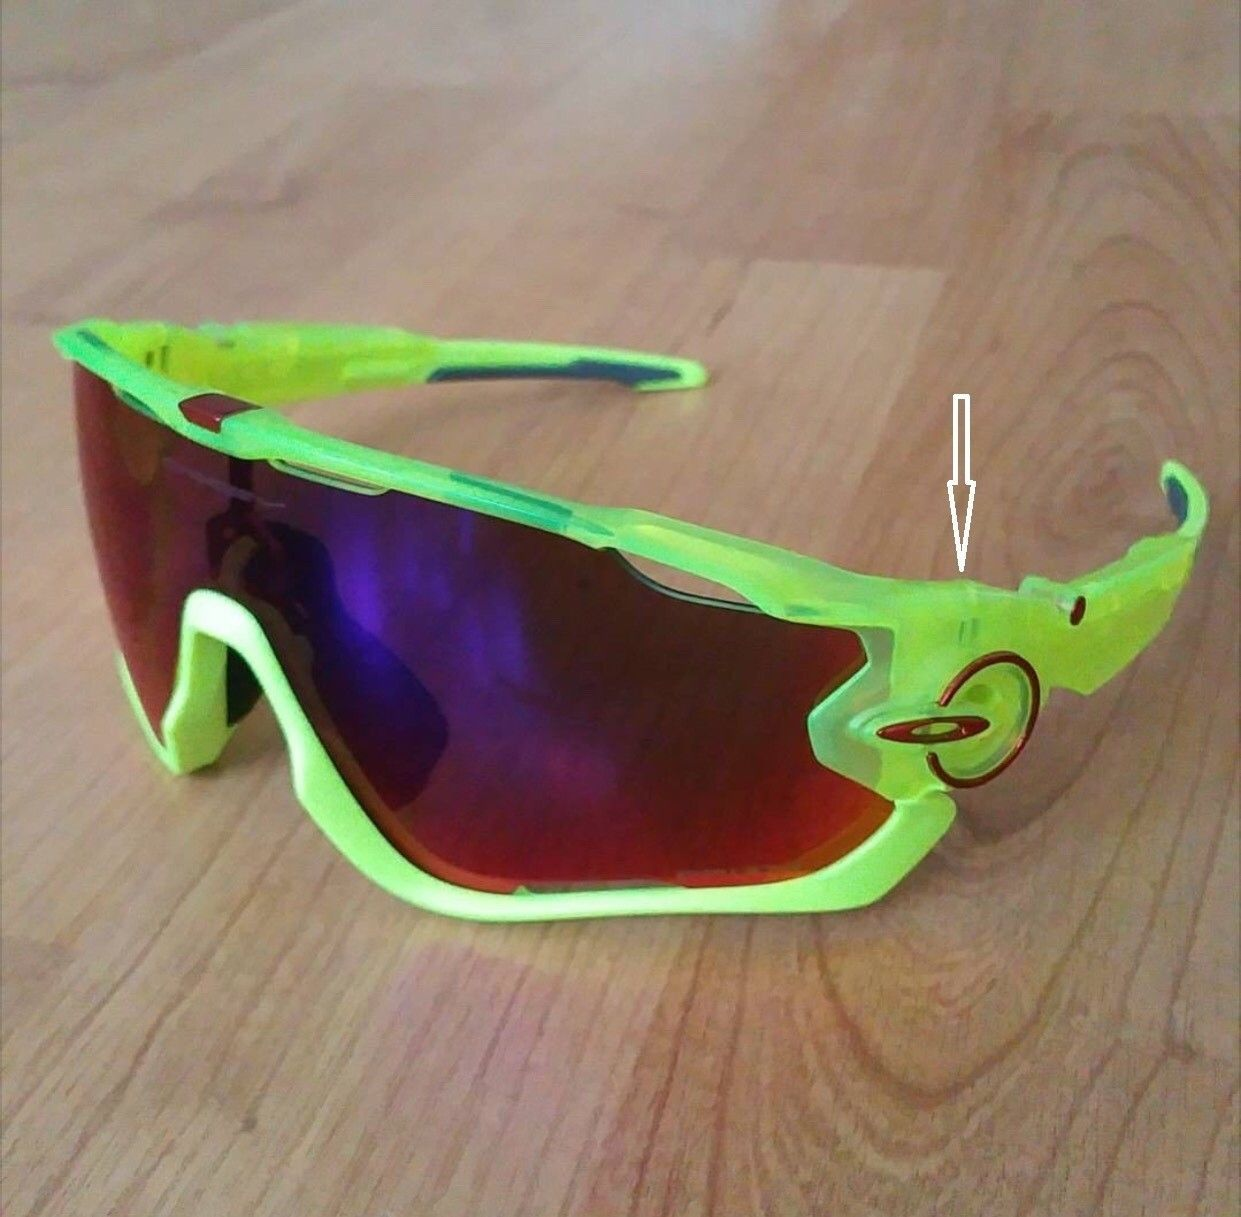 How to Dismantle / Take Apart an Oakley Jaw Breaker? - j break 1.jpg